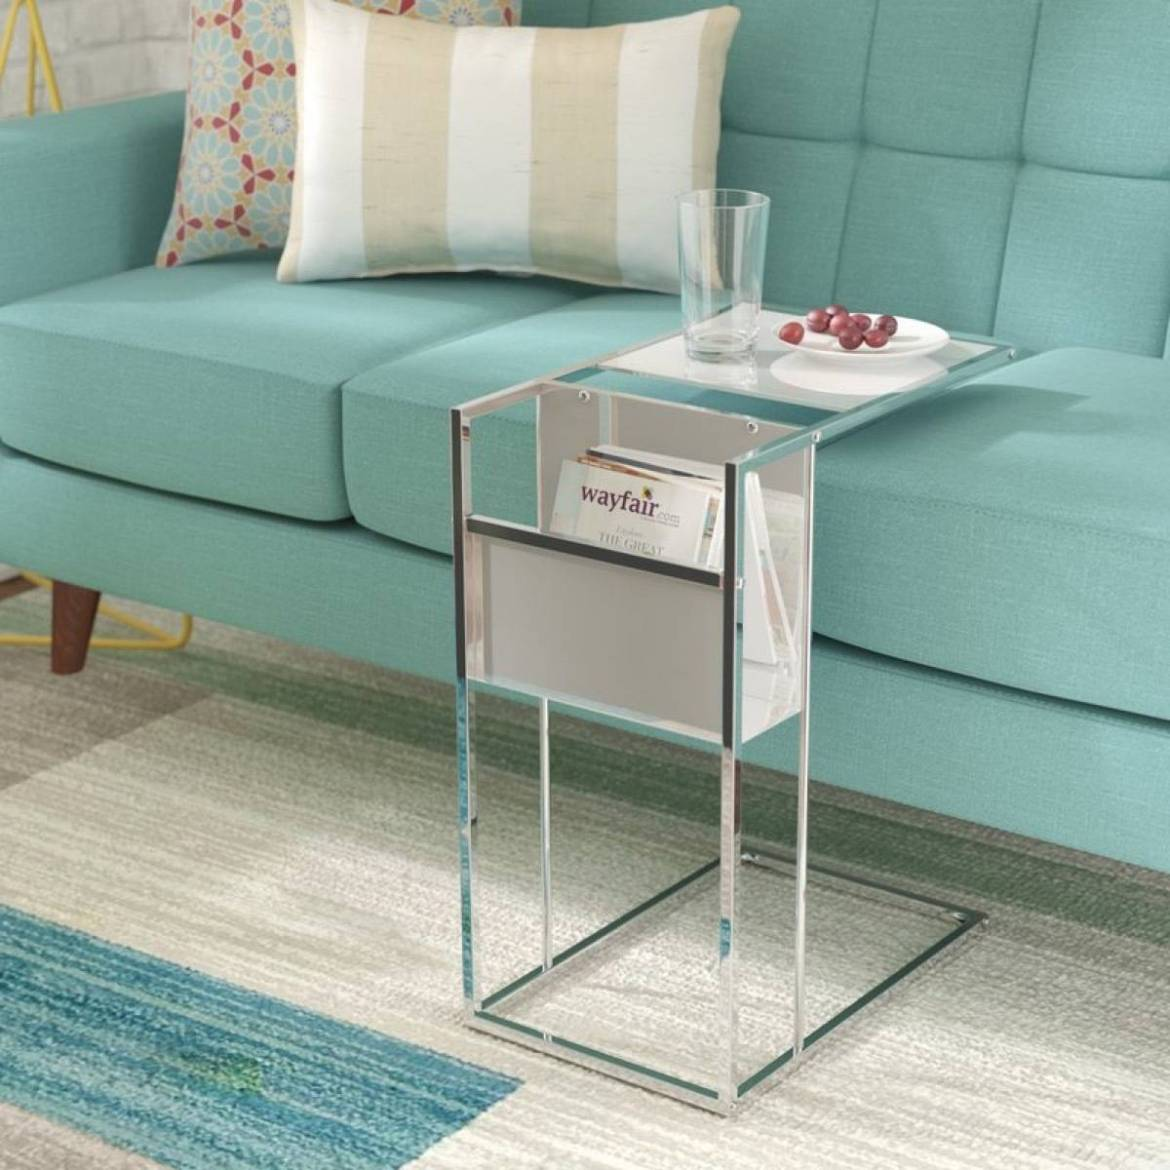 Christi end table from All Modern